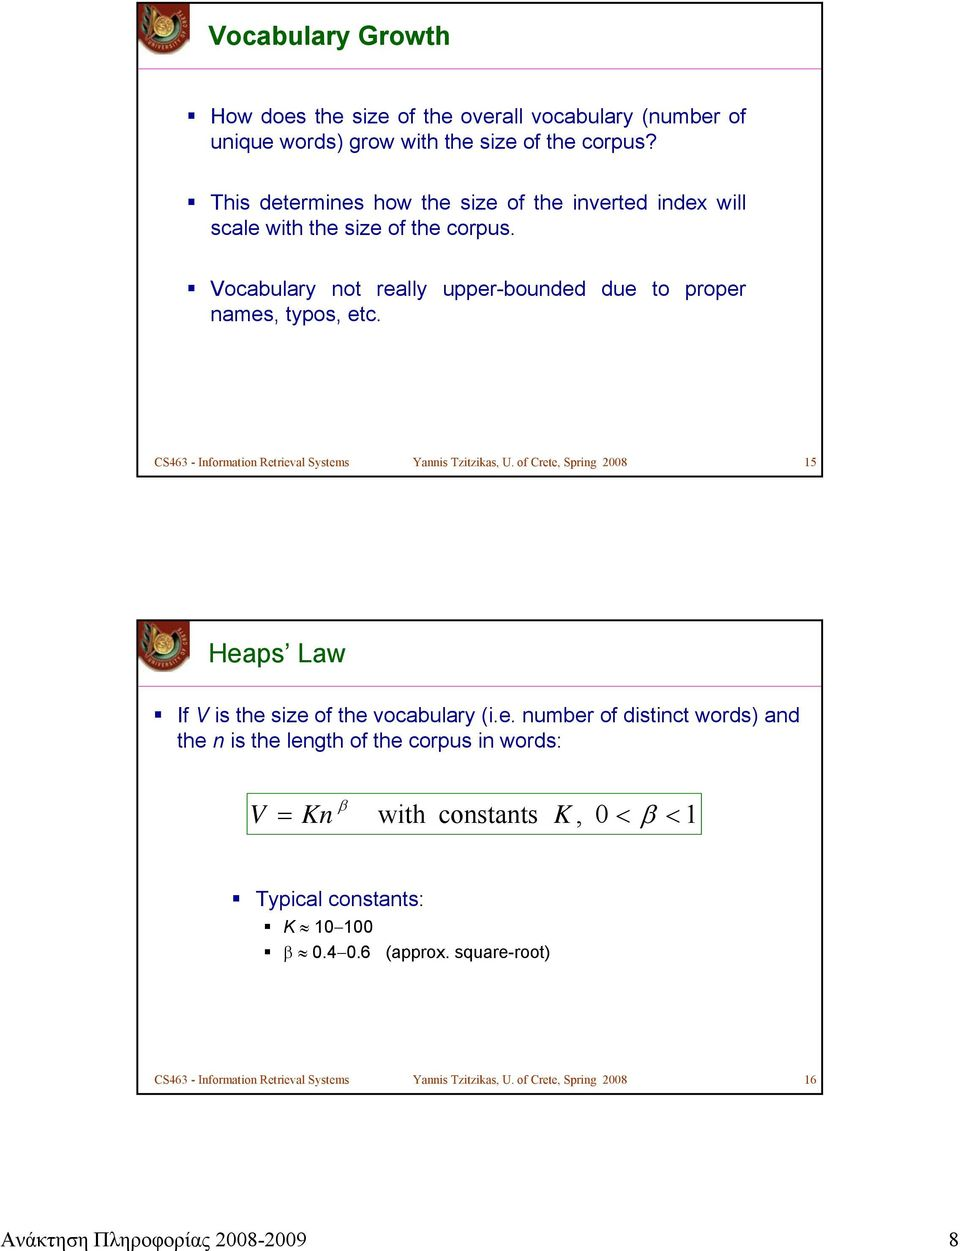 CS463 - Information Retrieval Systems Yannis Tzitzikas, U. of Crete, Spring 2008 15 Heaps Law If V is the size of the vocabulary (i.e. number of distinct words) and the n is the length of the corpus in words: V β = Kn with constants K, 0 < β < 1 Typical constants: K 10 100 β 0.